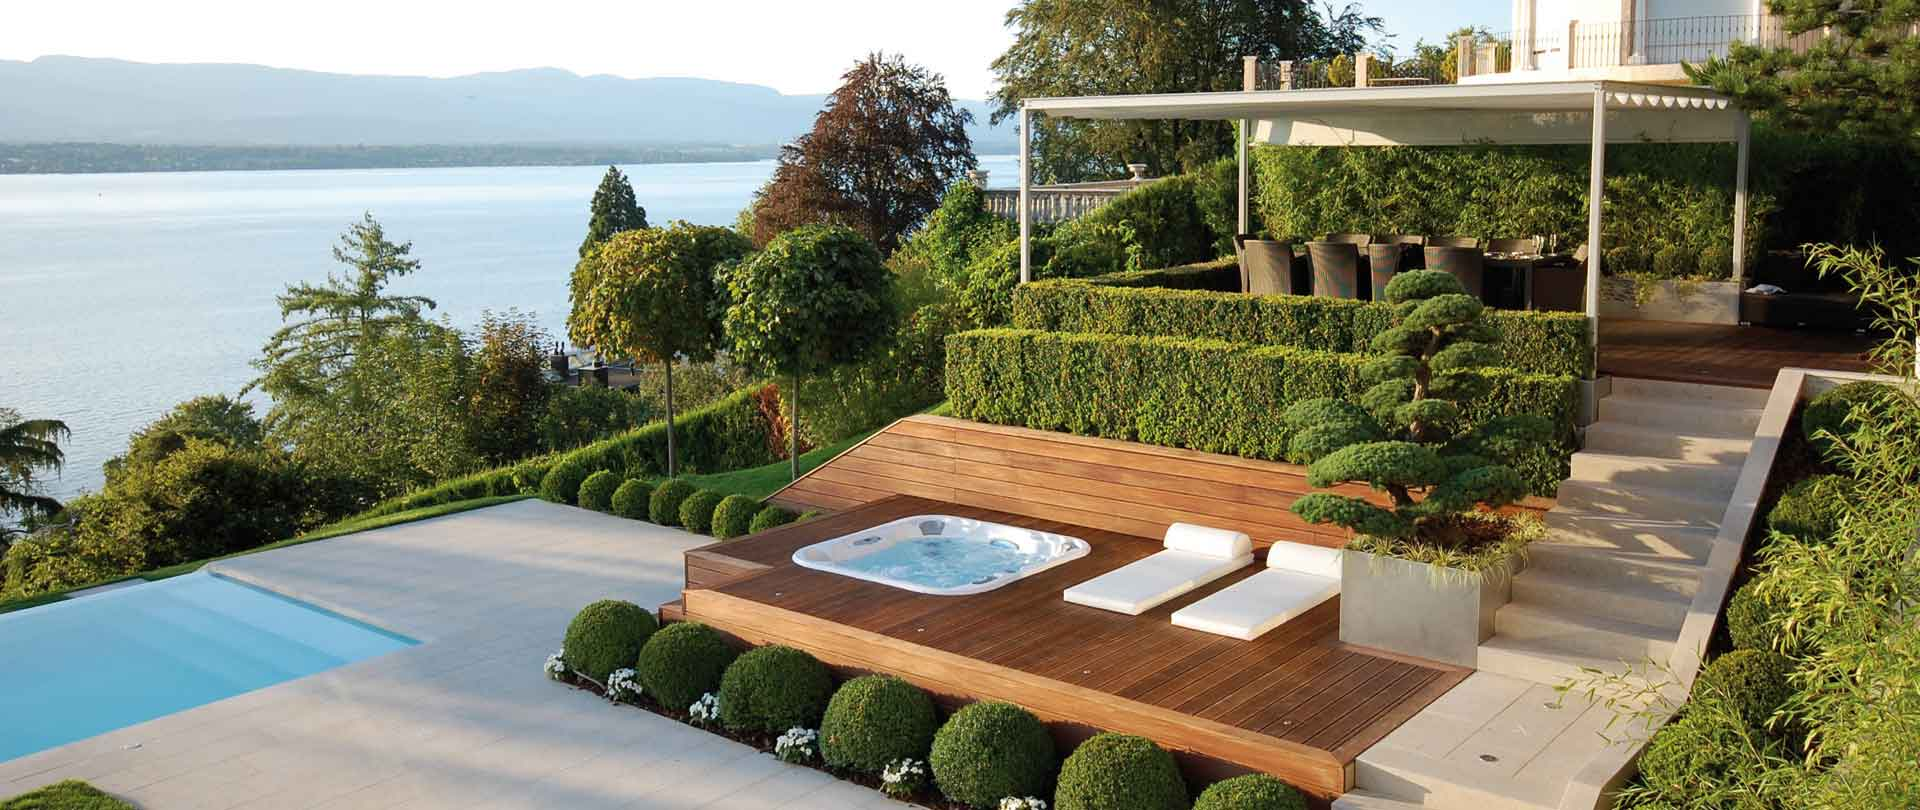 Spa Jacuzzi Annecy dimension one1